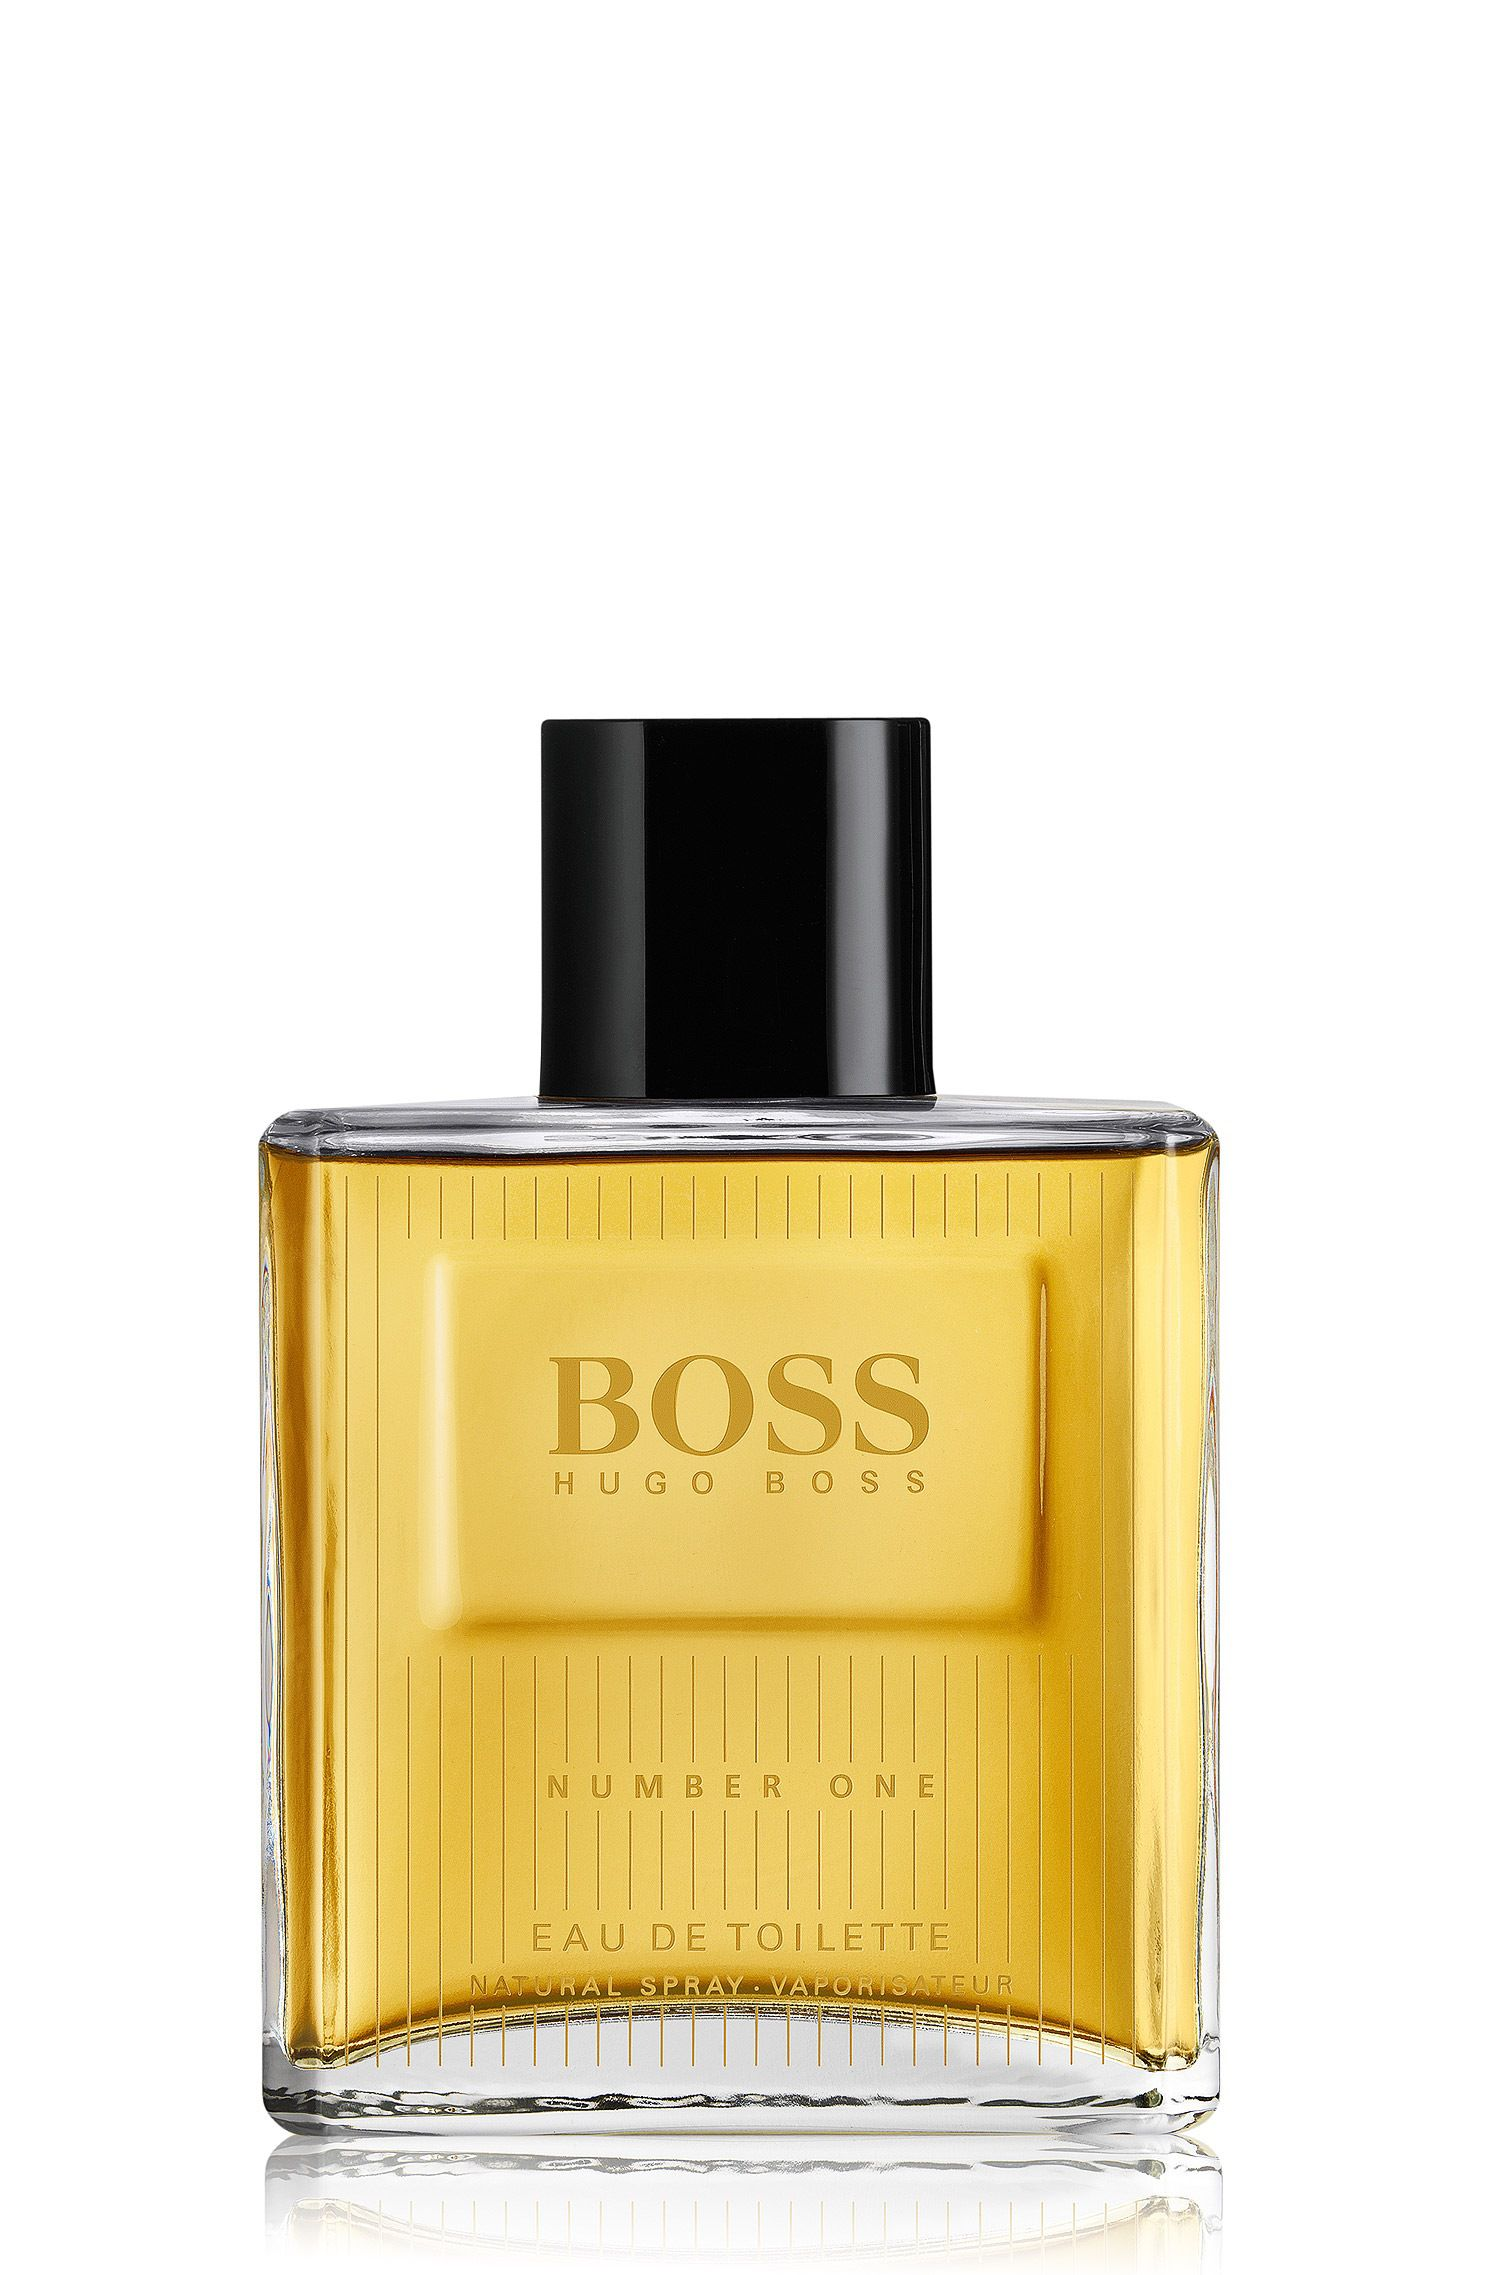 Eau de toilette BOSS Number One de 125 ml